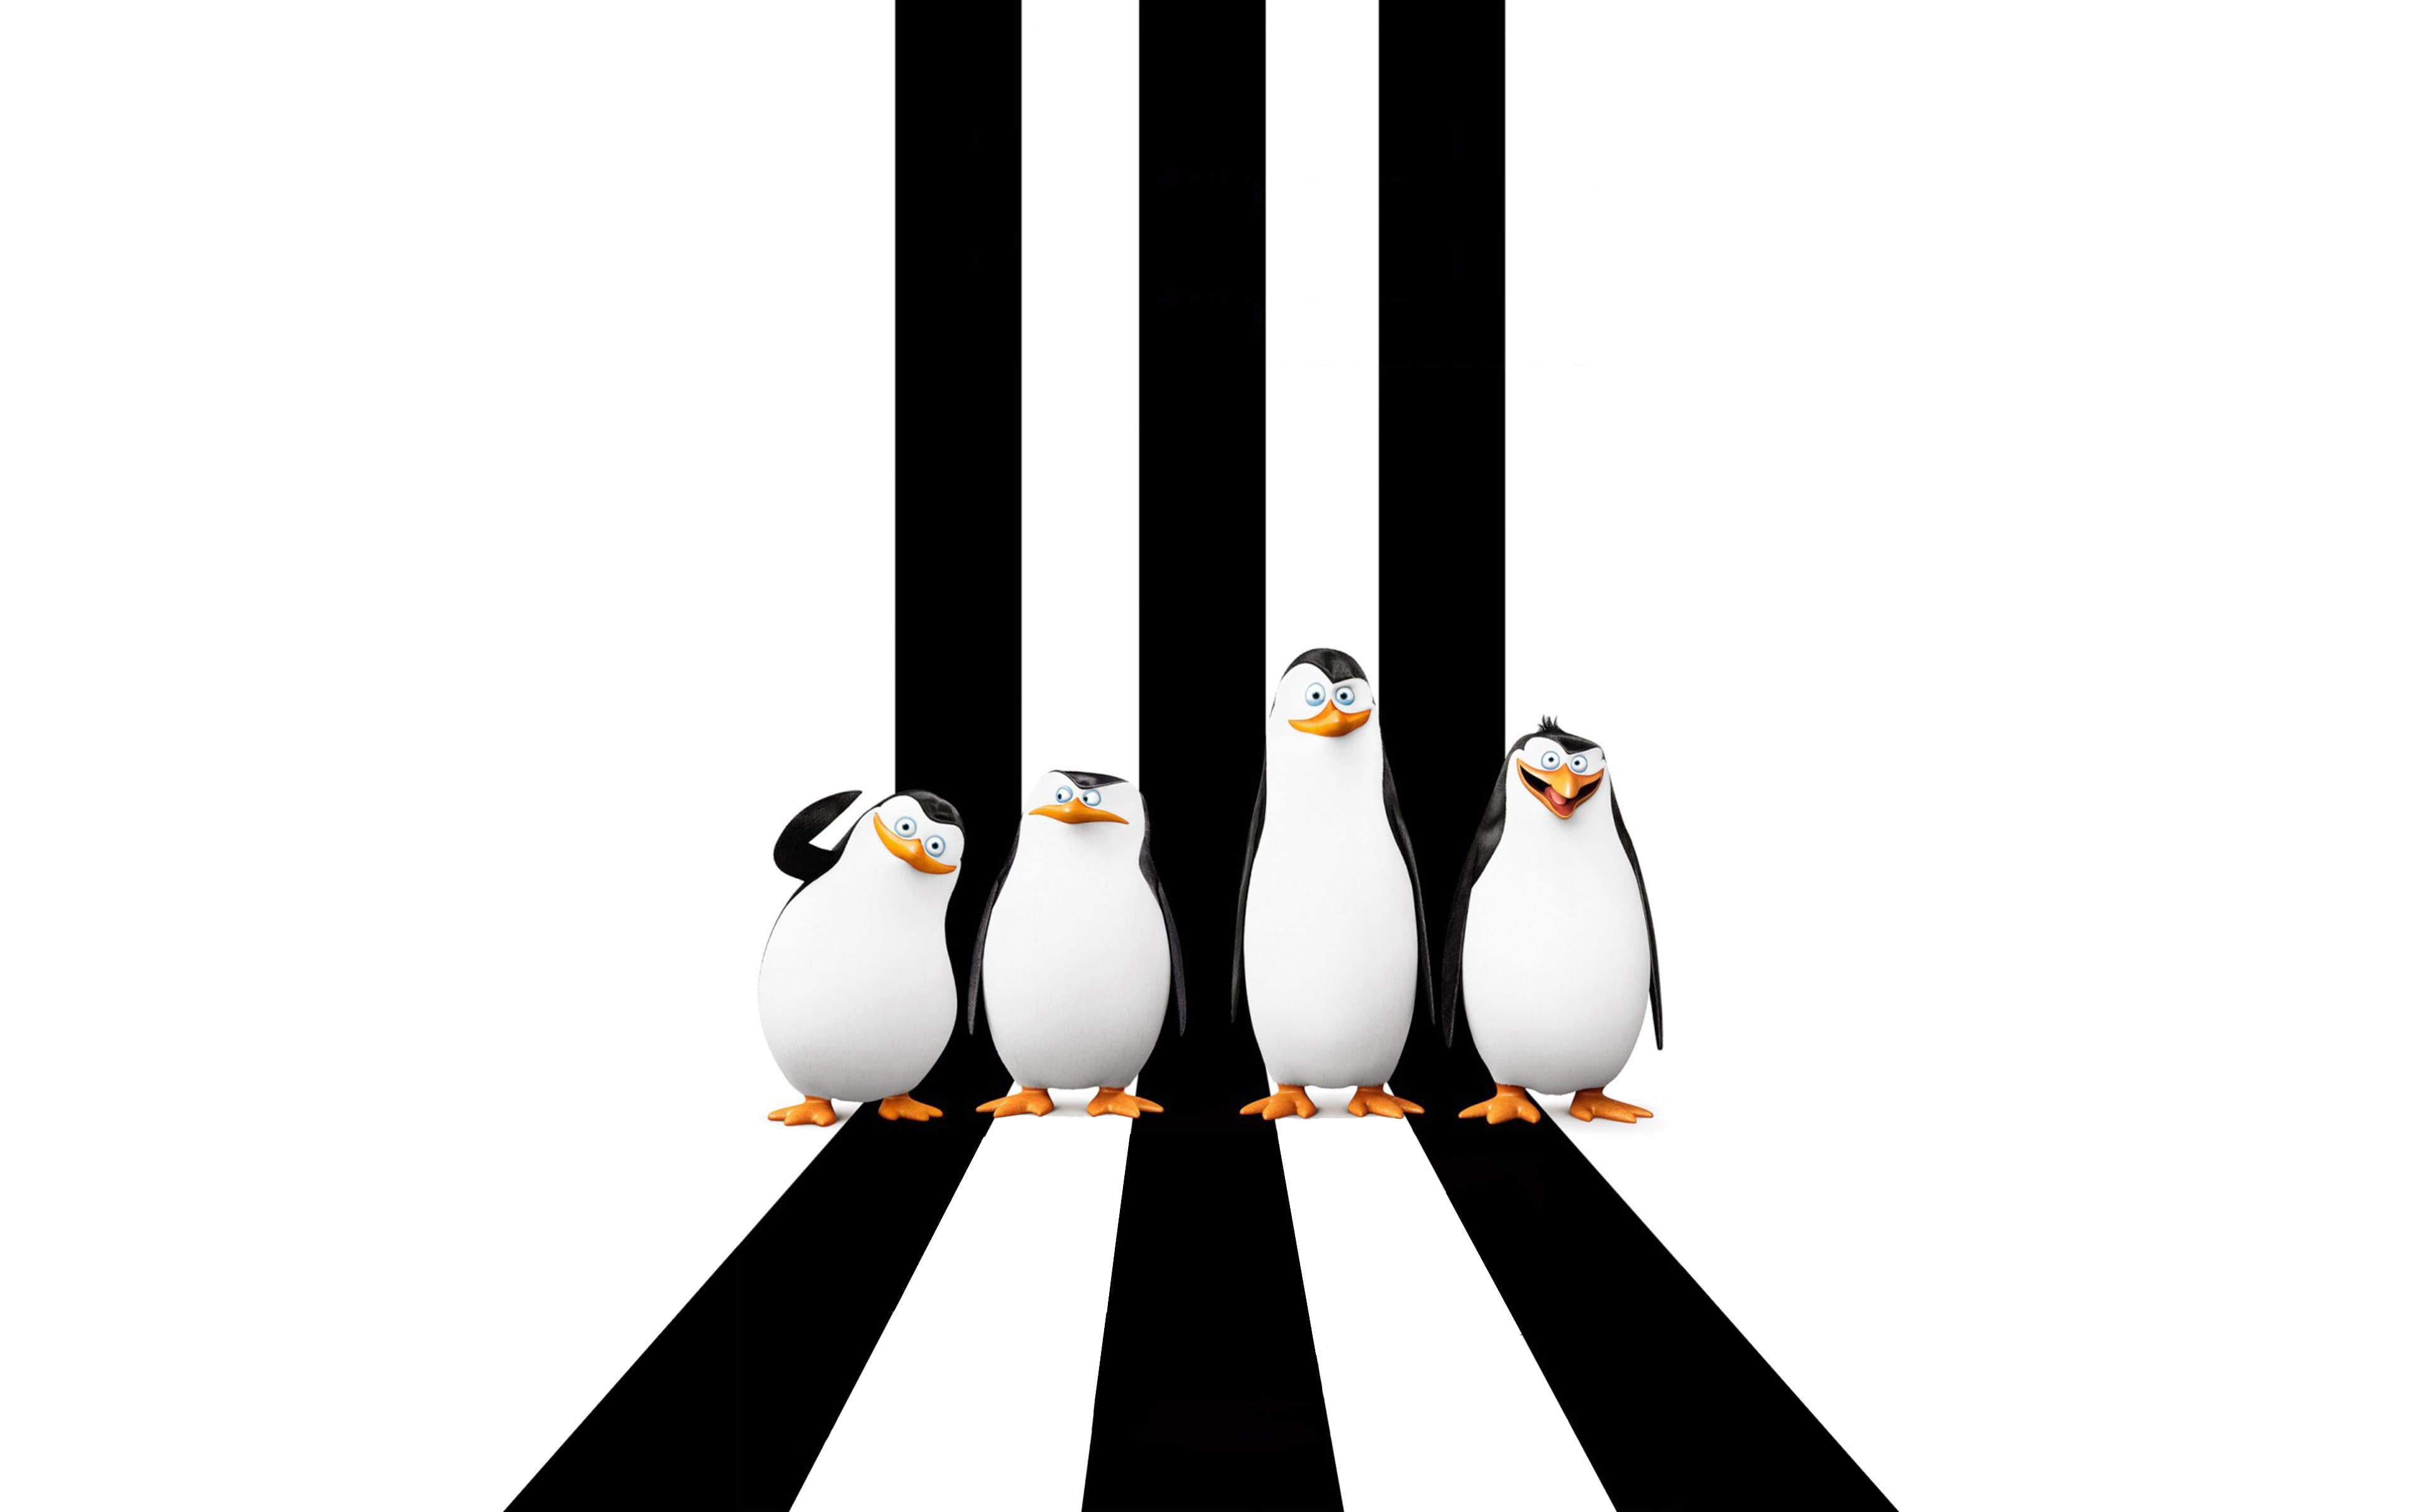 penguins of madagascar wallpapers - wallpaper cave